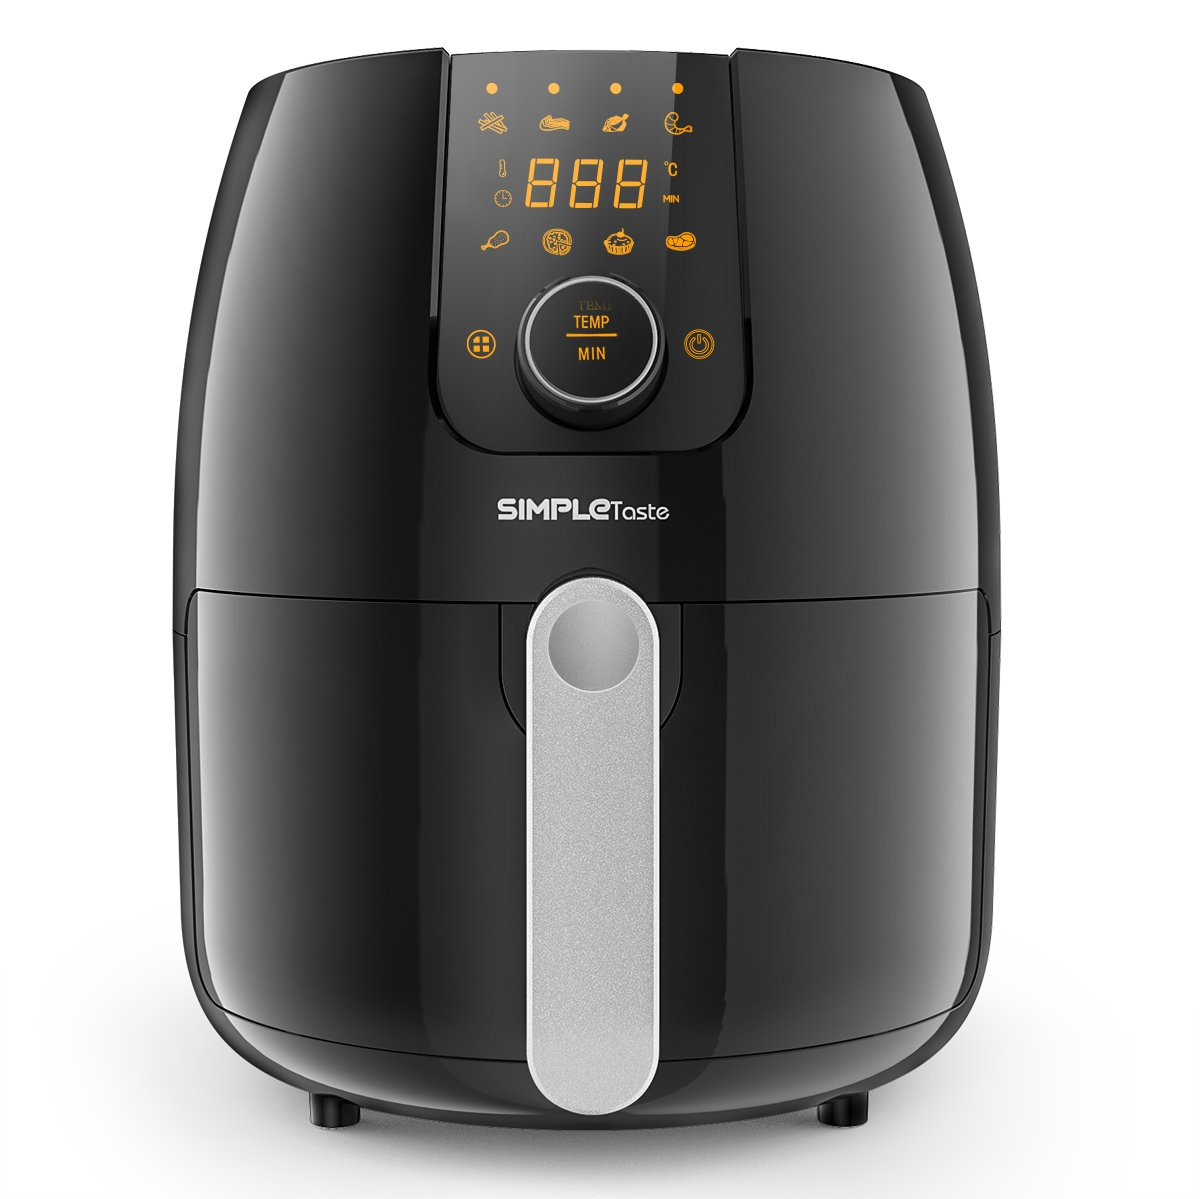 SimpleTaste Air Fryer for Delicious, Low Calories Food, Rapid Air Circulation Technology, 8 Smart Preset Programs Cooks Food Fast and Evenly, Digital Screen, 1500 Watt, 3.2QT